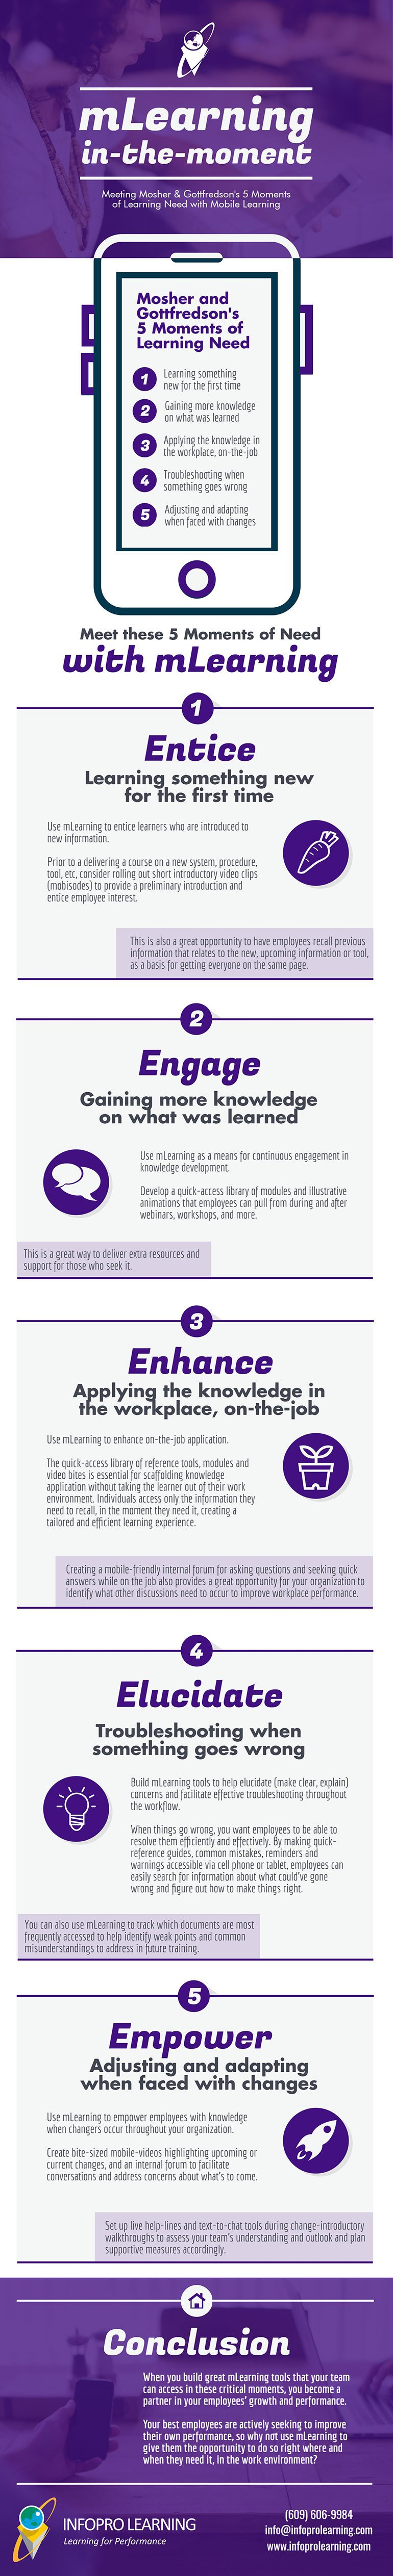 mLearning in-the-Moment: Learning Right When It's Needed Infographic